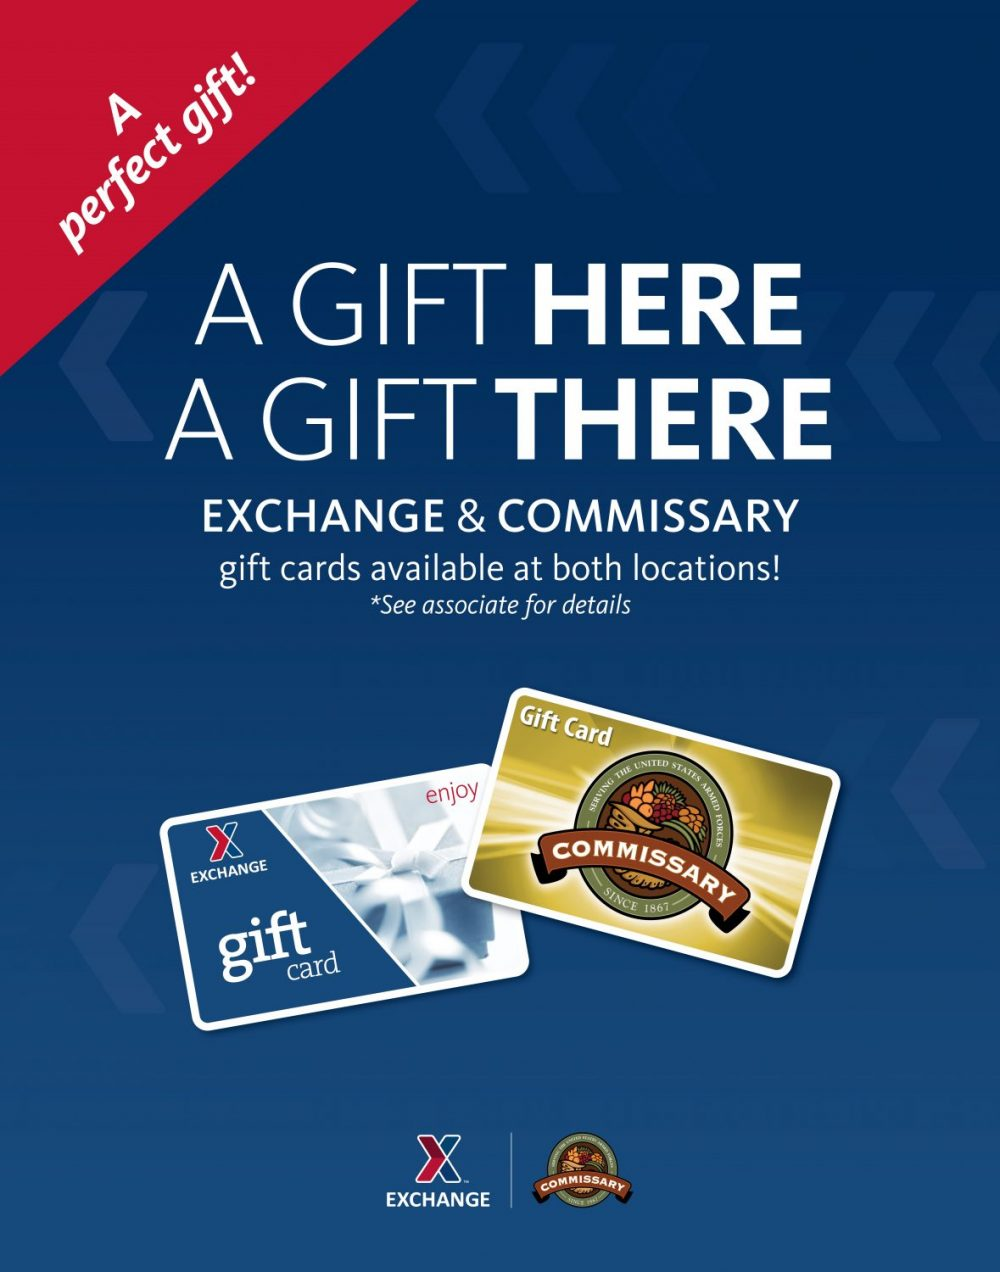 Exchange partners with commissary on gift card sales